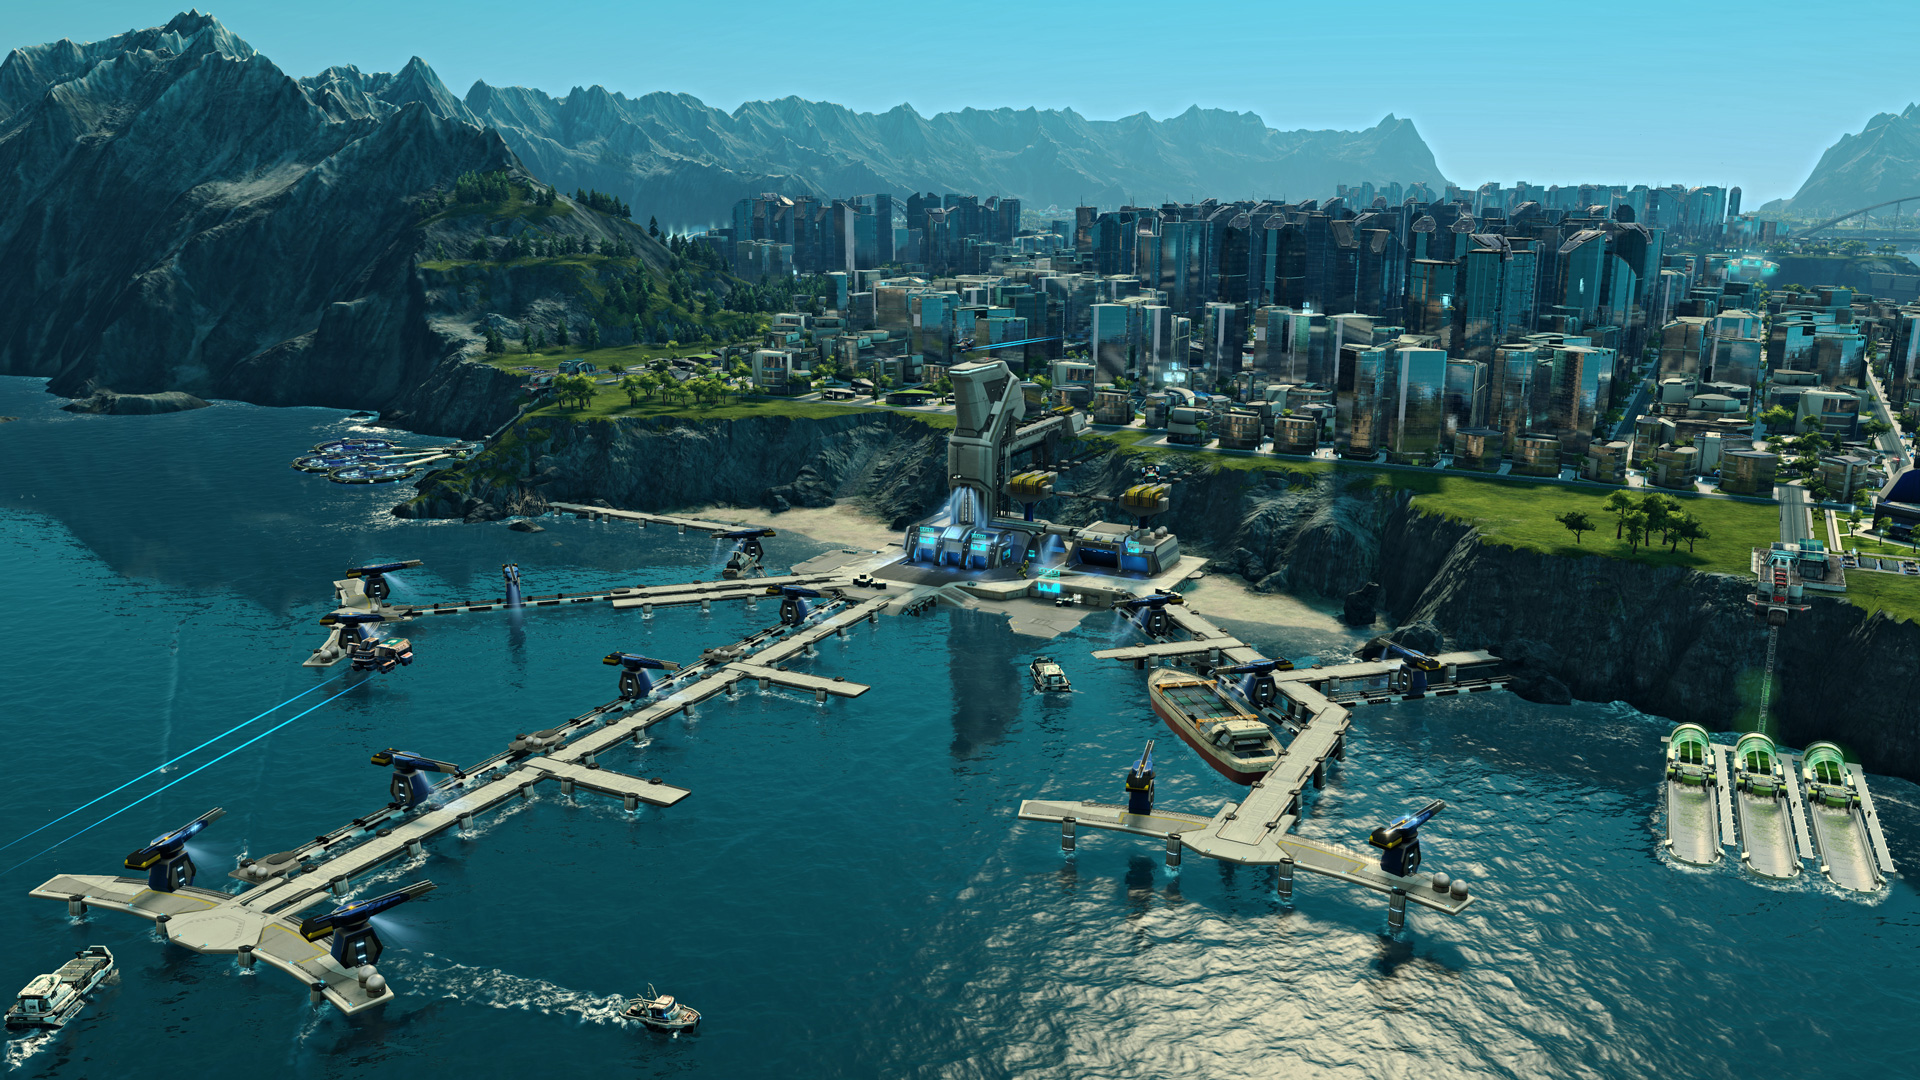 https://ubistatic2-a.akamaihd.net/emea/gamesites/anno/anno2205/screenshotsE3/Anno2205_Port_Area_big.jpg